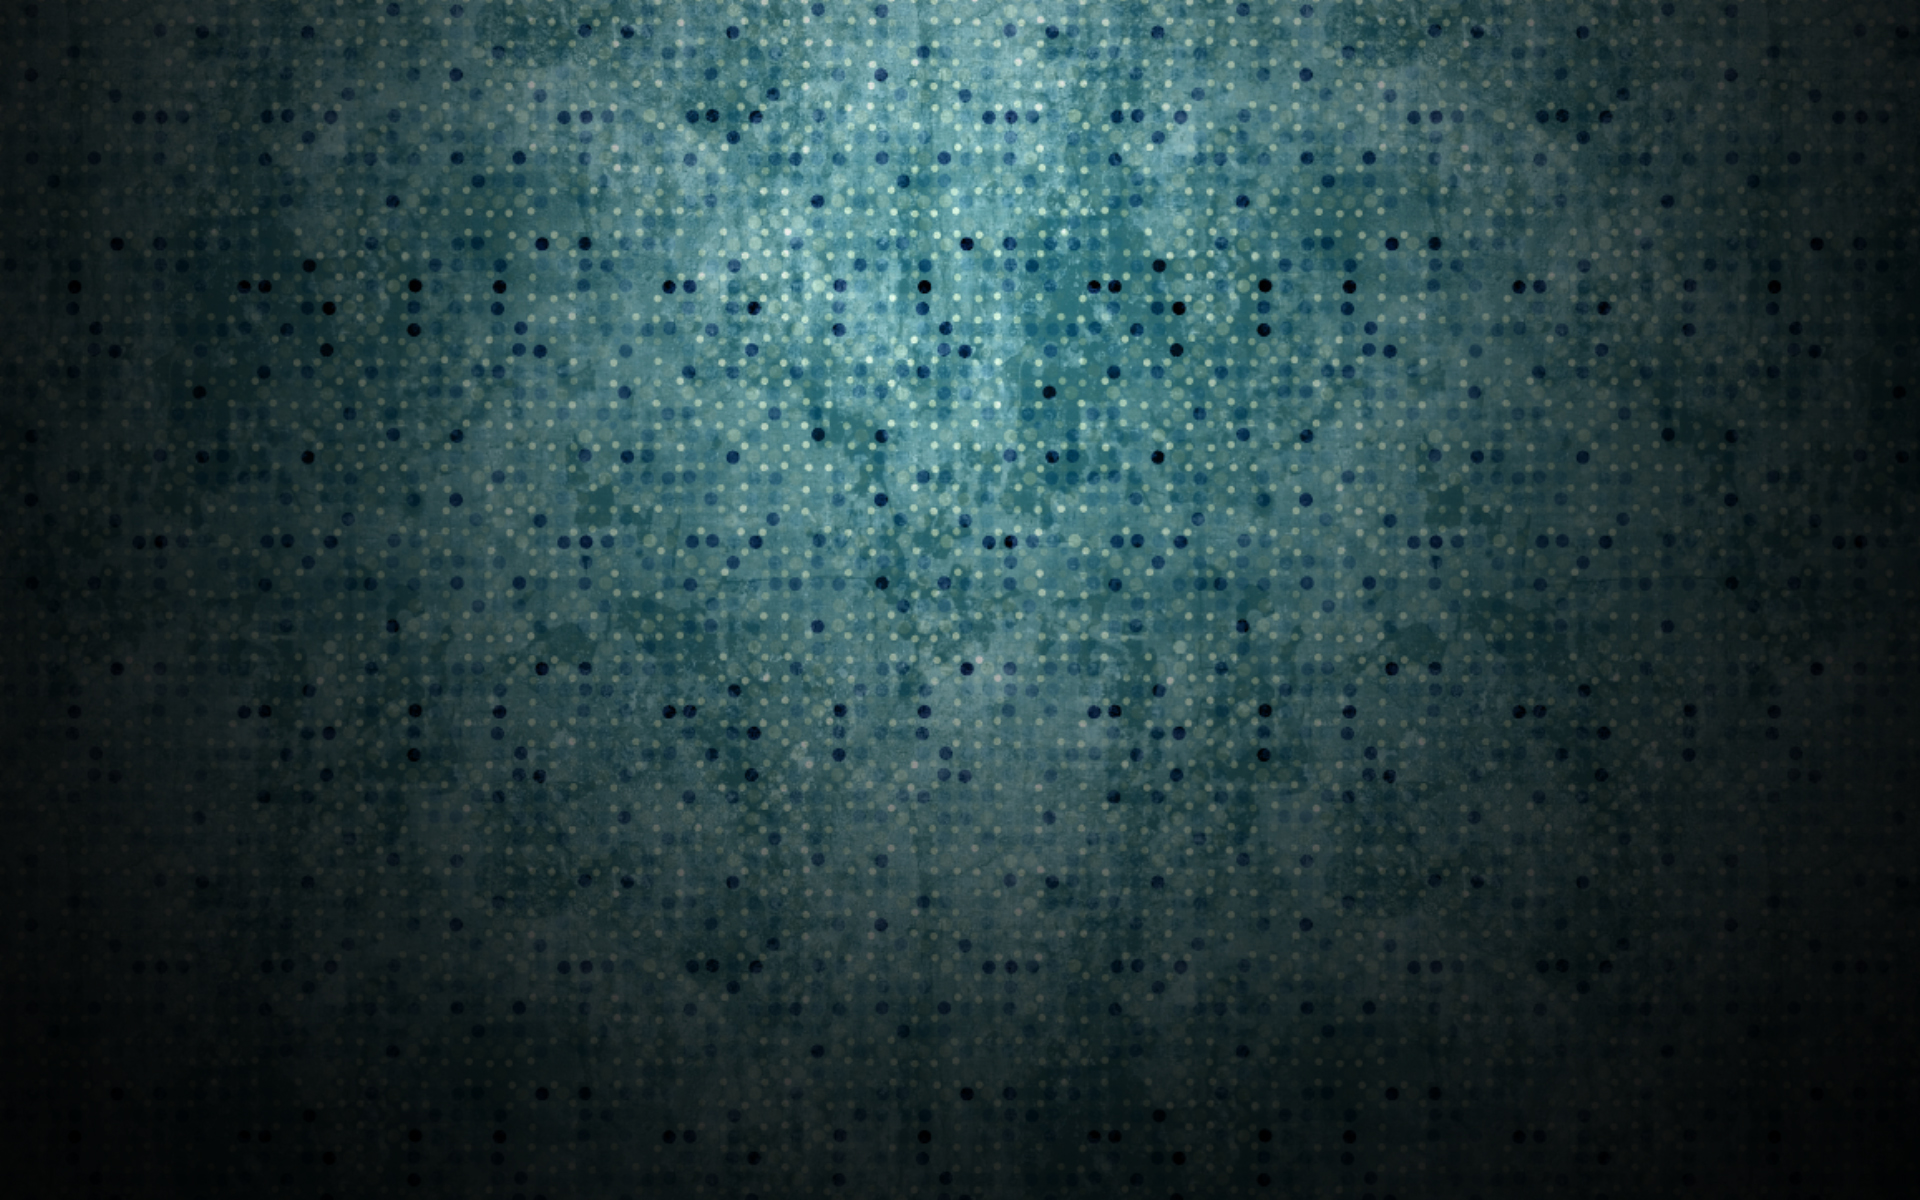 Pattern Vintage Background 3434 Wallpaper Cool Walldiskpaper 1920x1200